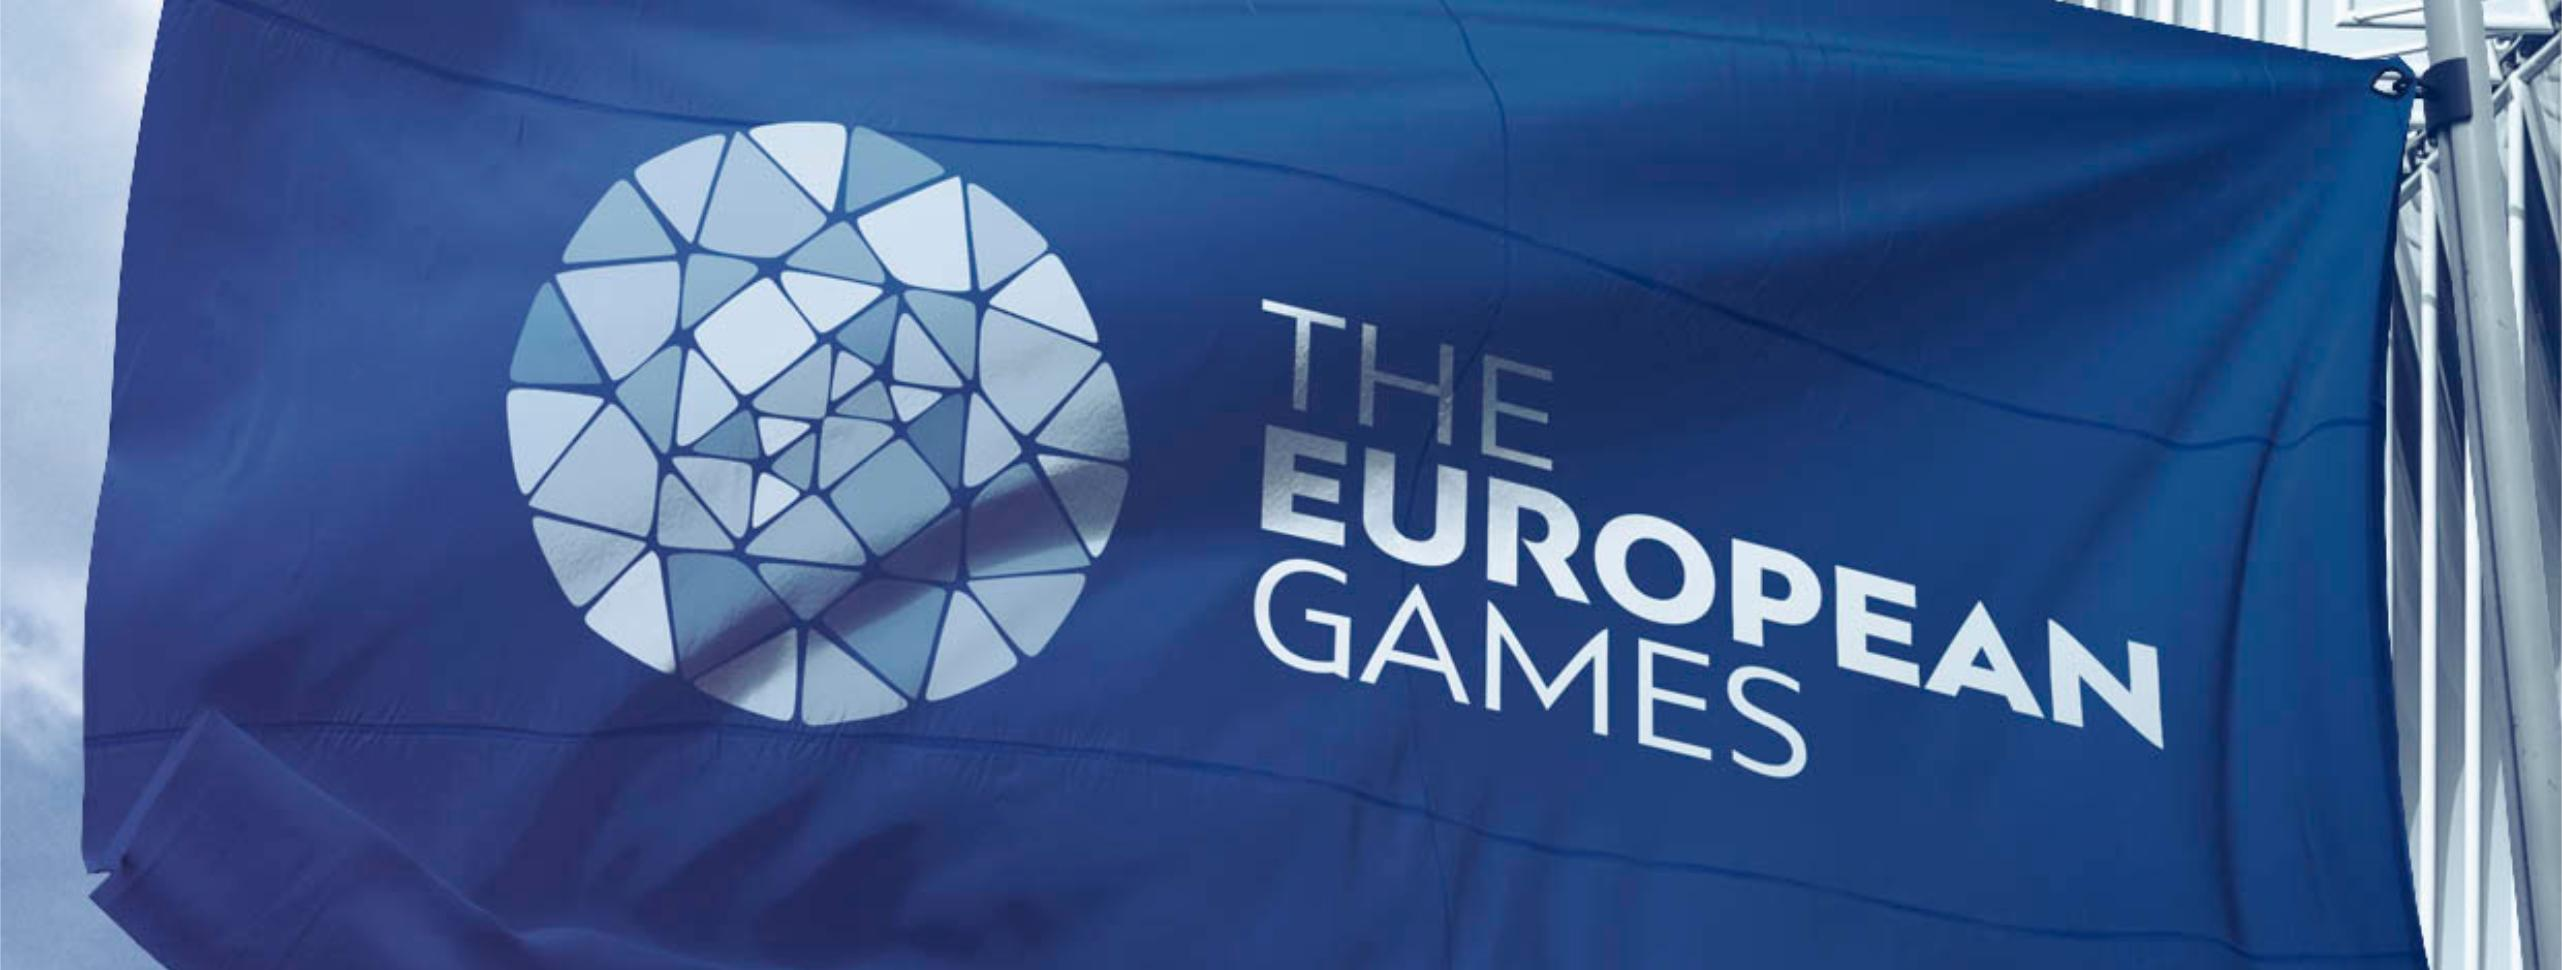 SPORT CLIMBING ADDED TO THE EUROPEAN GAMES KRAKOW 2023 PROGRAMME